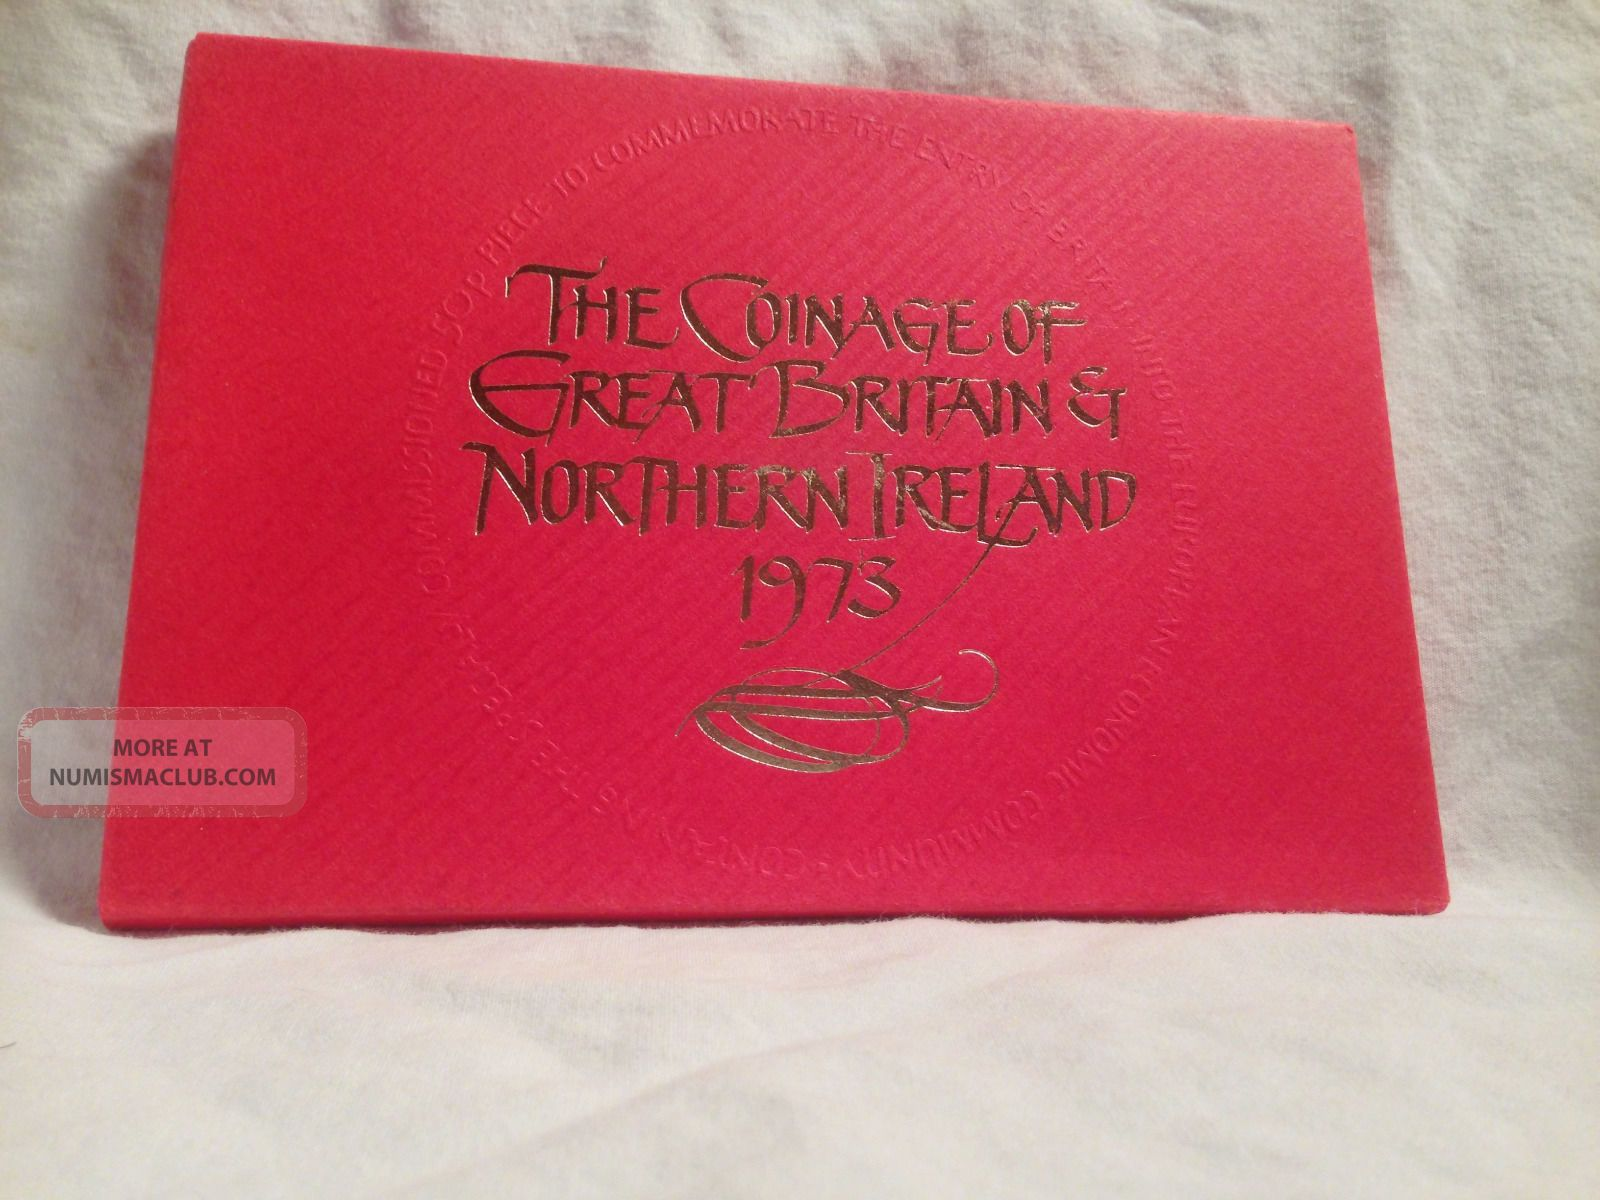 Coinage Of Great Britain And Northern Ireland 1973 UK (Great Britain) photo